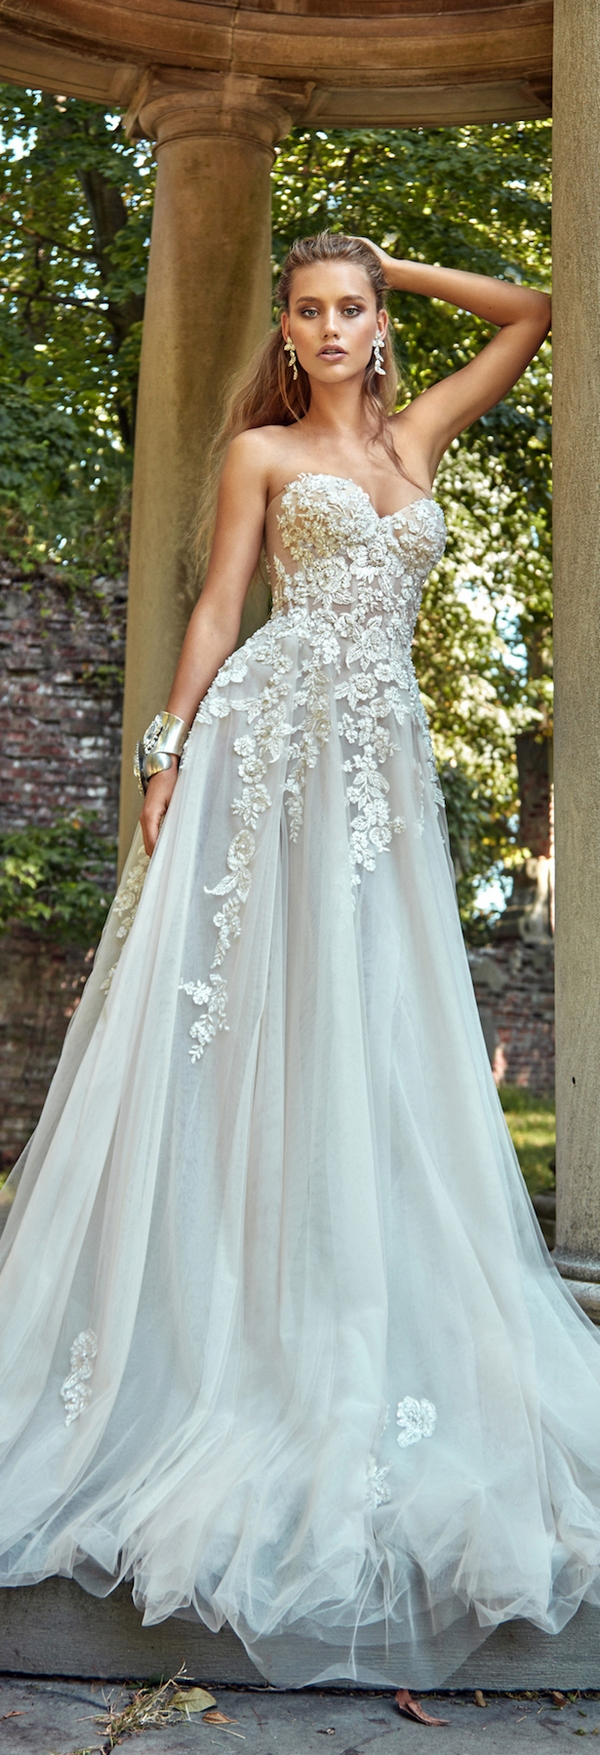 27 Fall 2017 Wedding Dresses From Famous Designers - Weddingomania